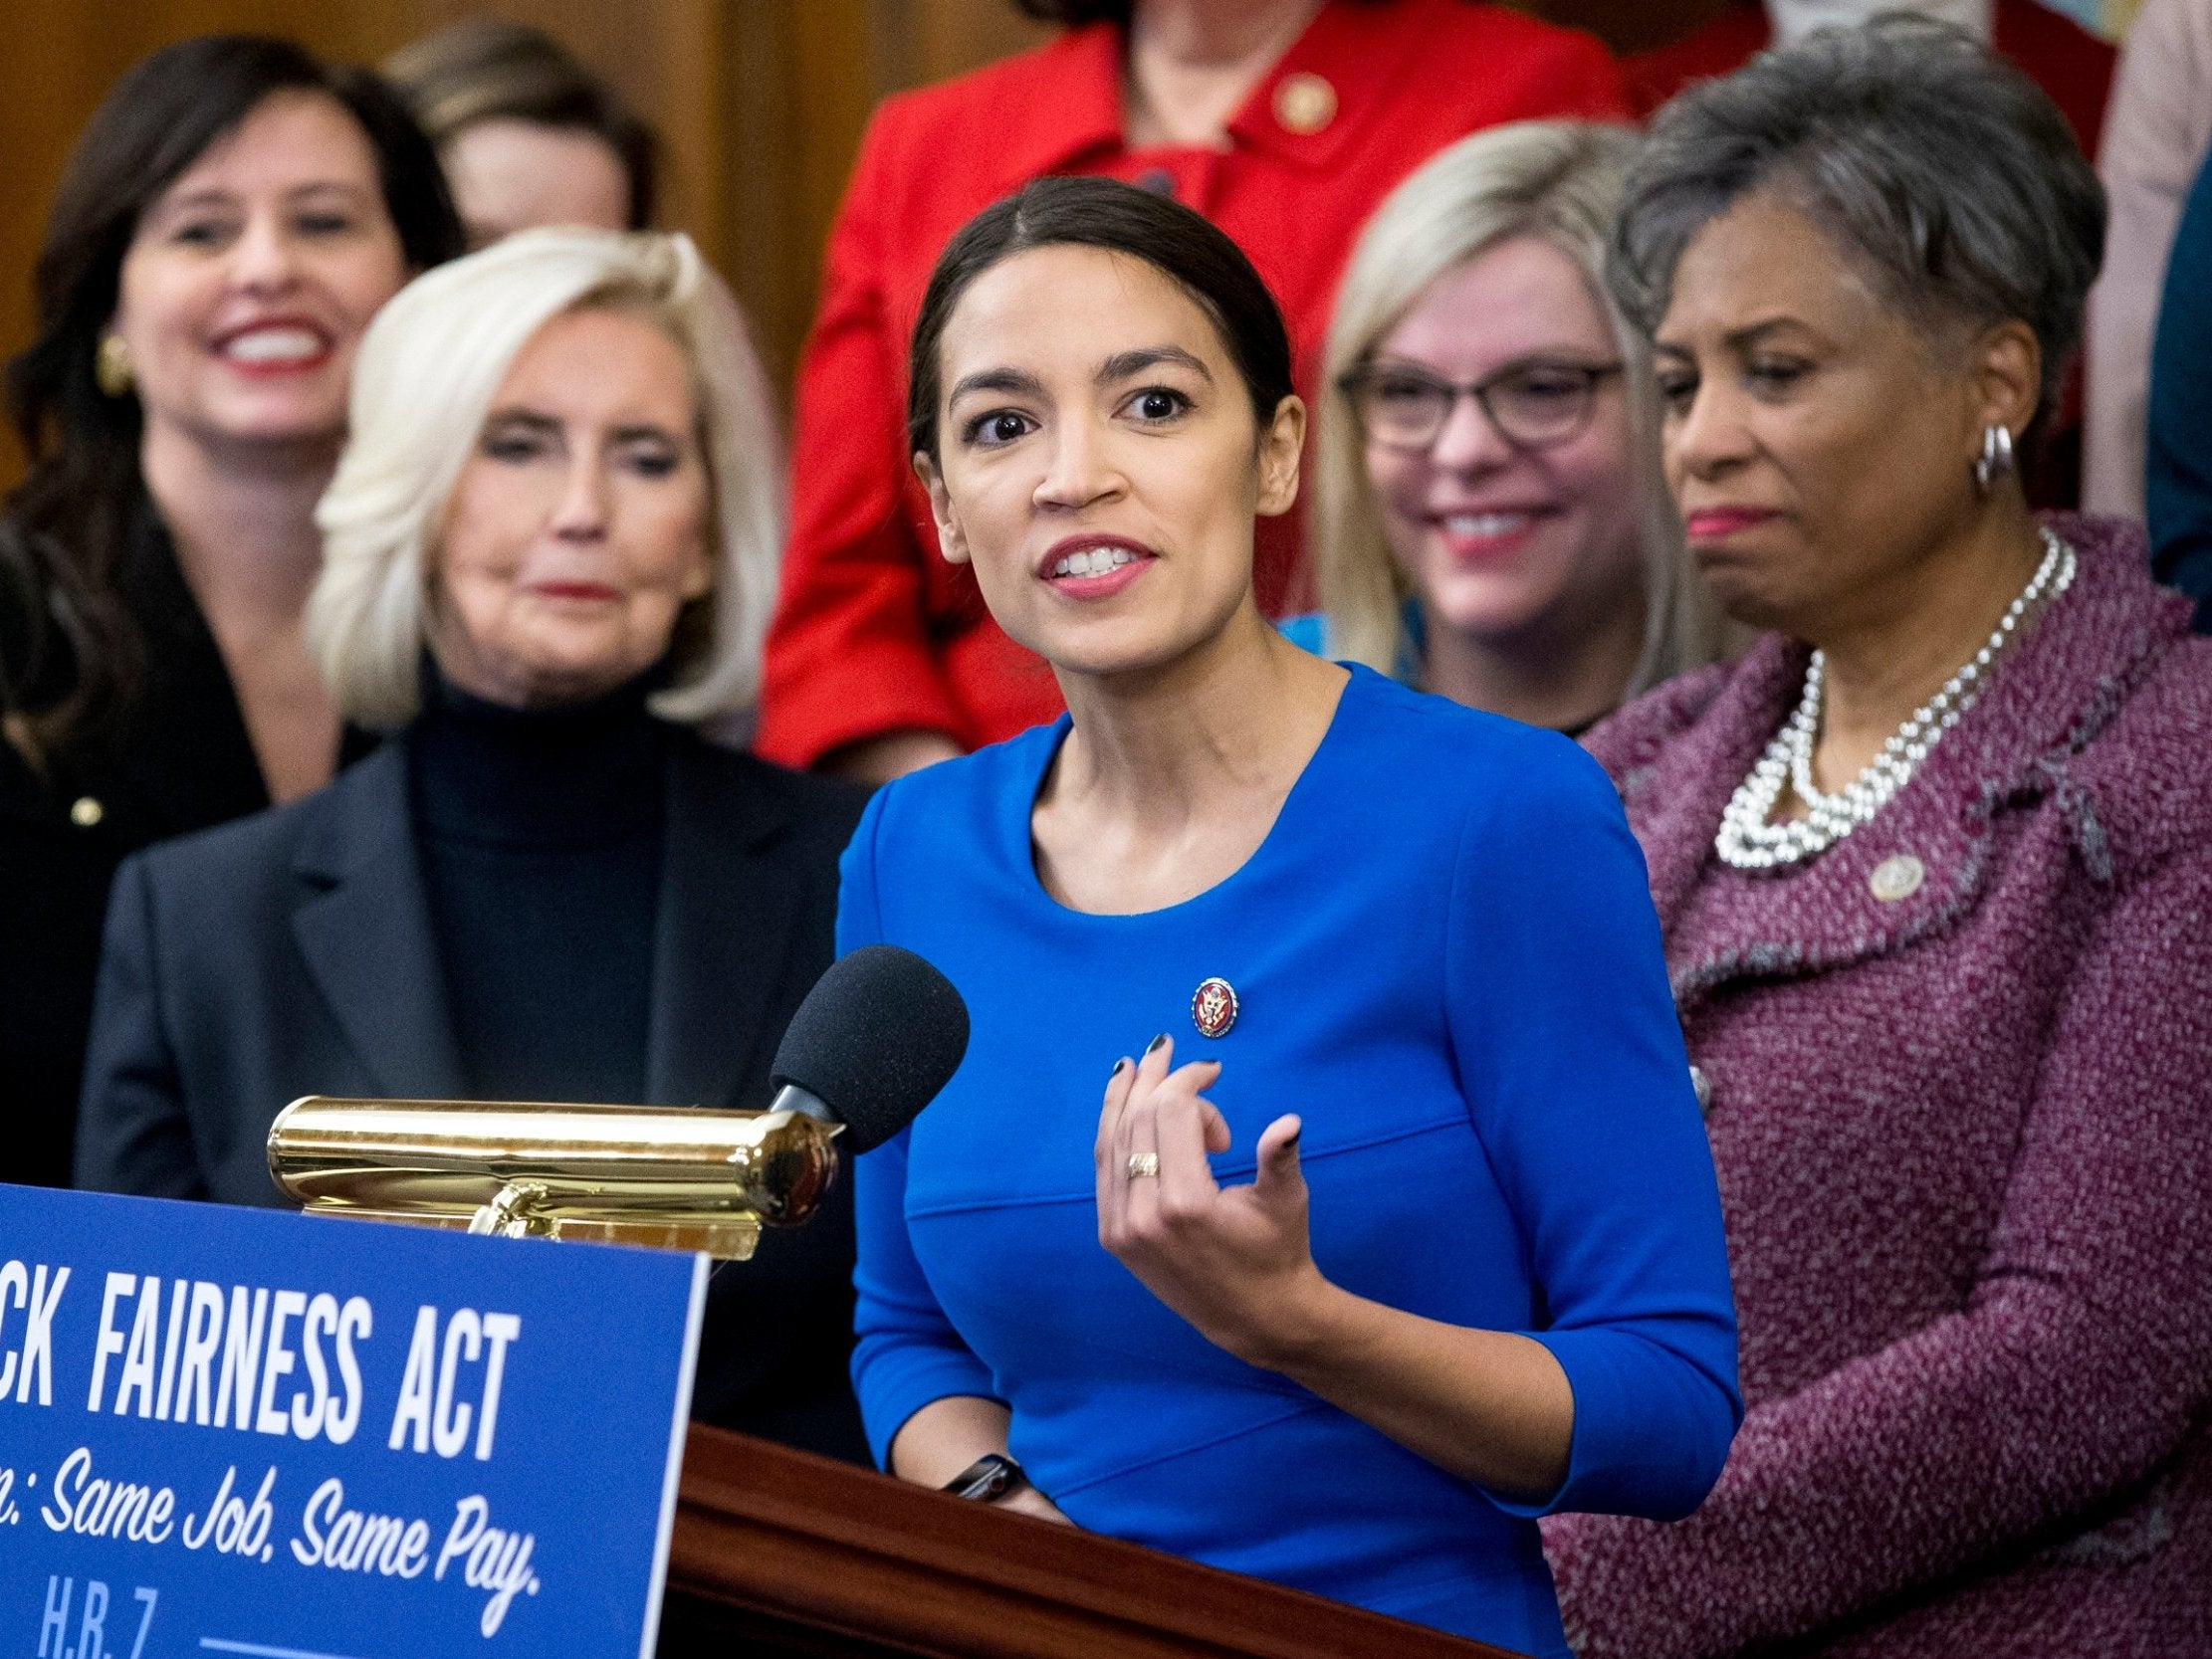 State of the Union: Alexandria Ocasio-Cortez bringing woman who cornered Jeff Flake at Brett Kavanaugh hearing as her guest